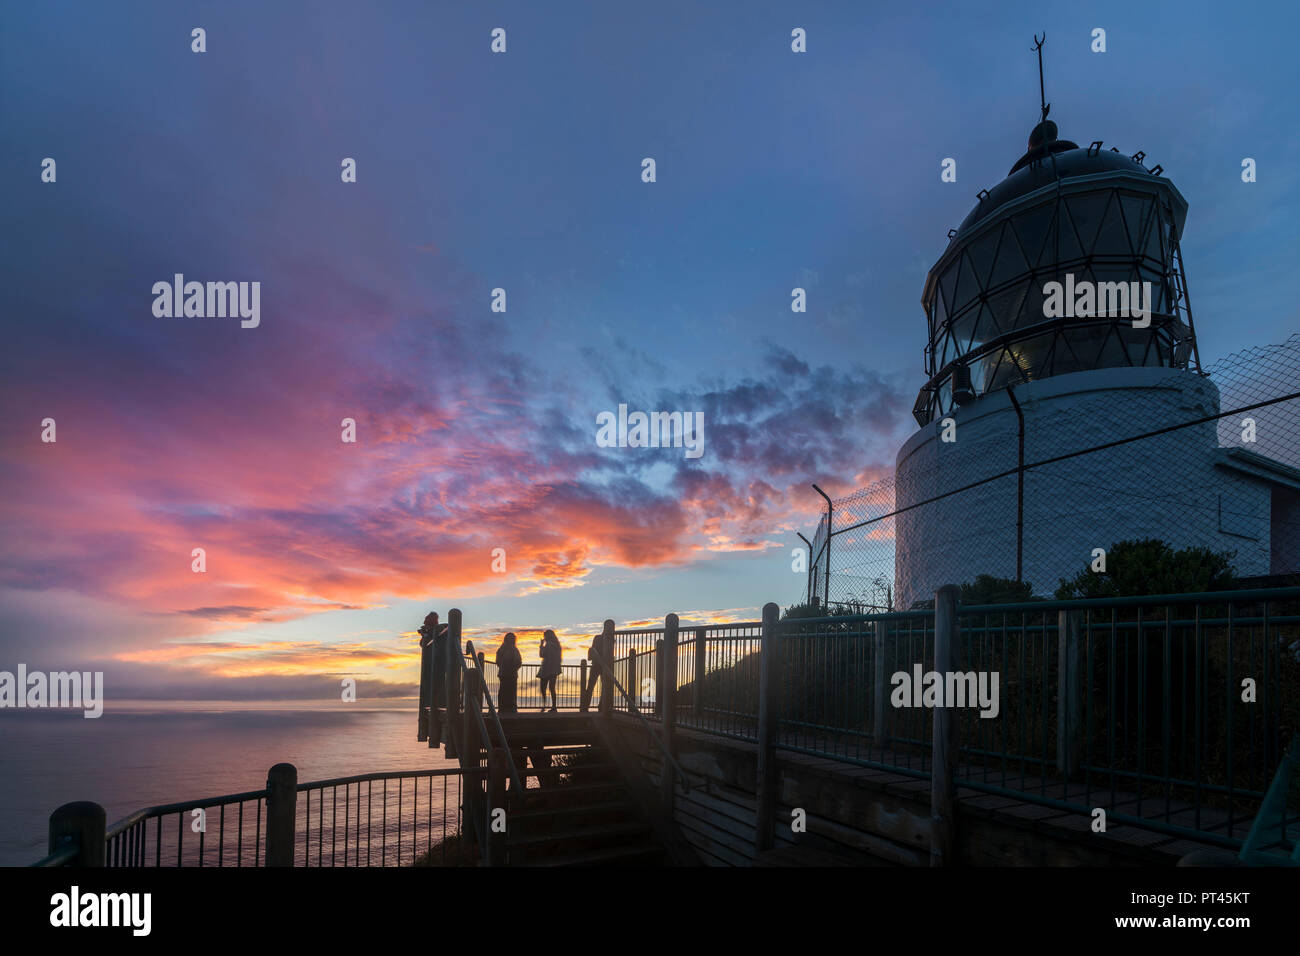 Sunset at Nugget Point lighthouse, Ahuriri Flat, Clutha district, Otago region, South Island, New Zealand, - Stock Image